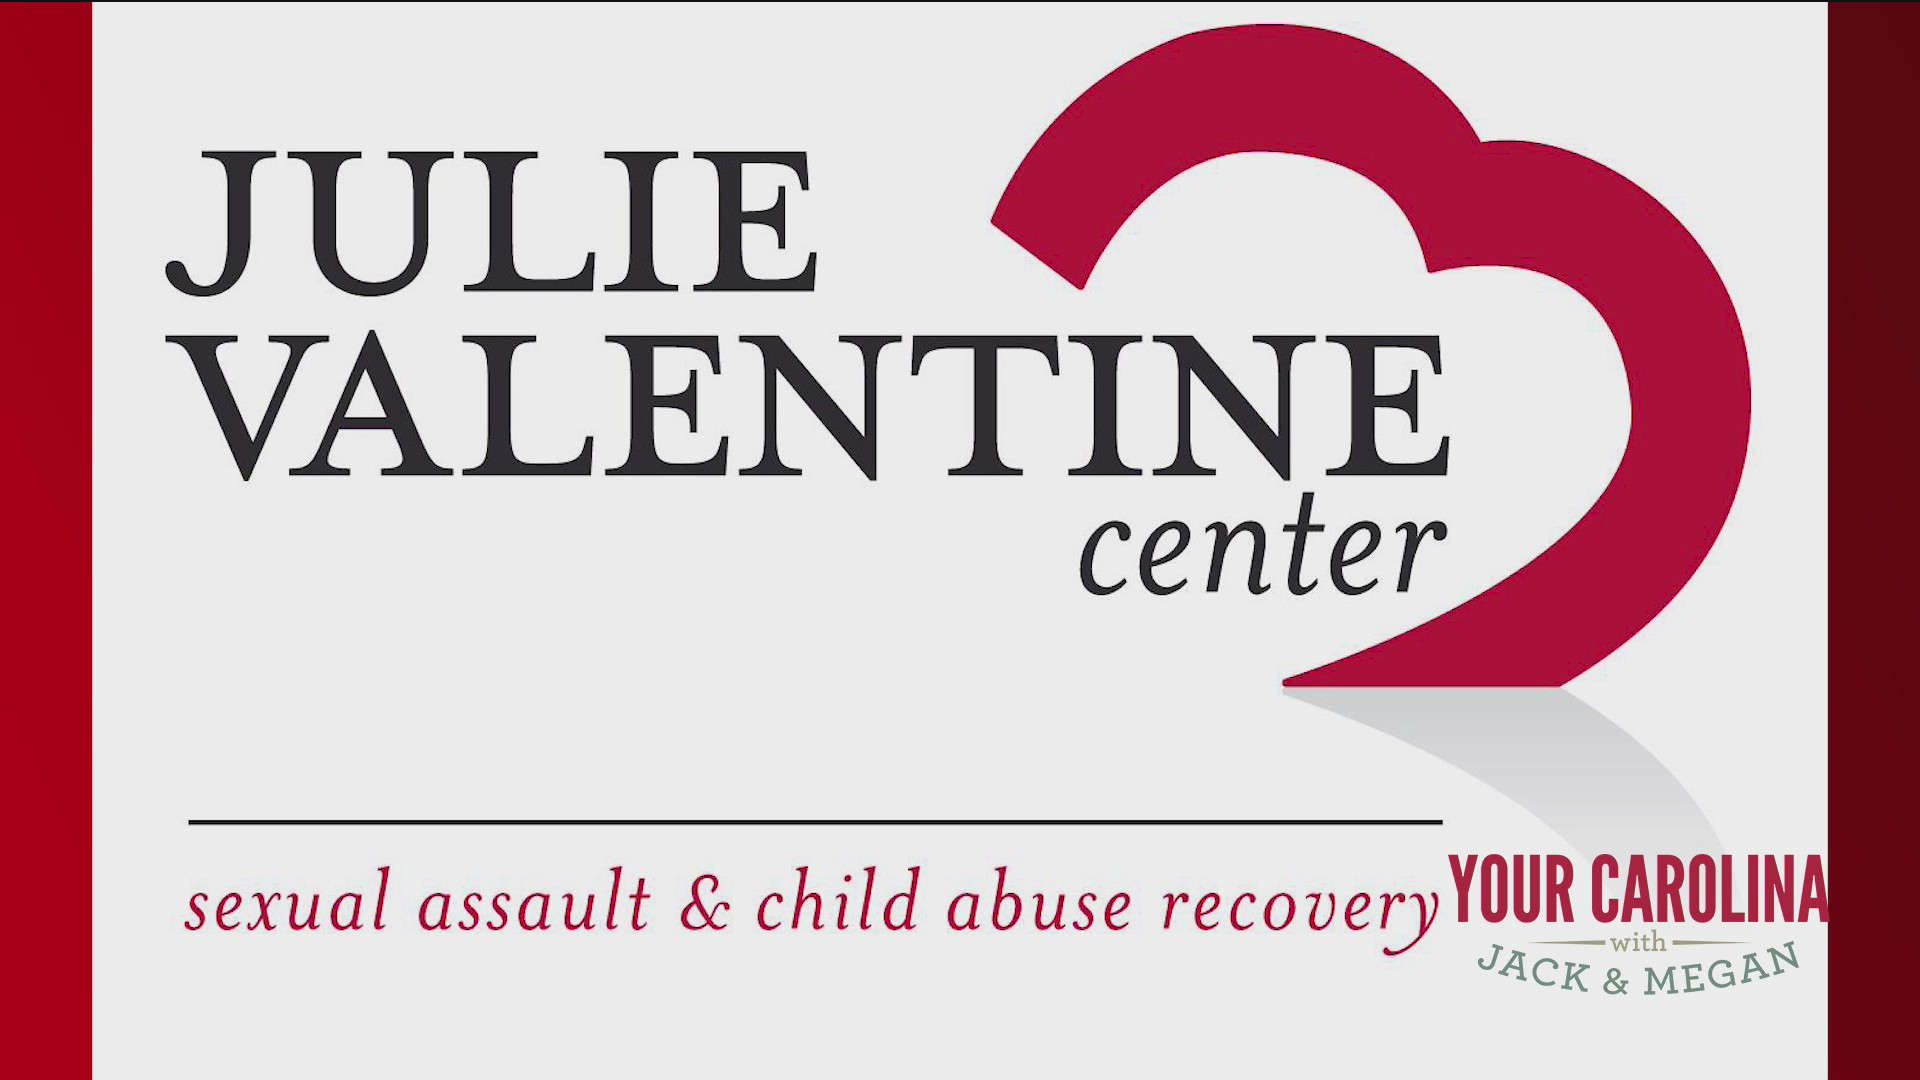 Caring for the Carolinas - Julie Valentine Center